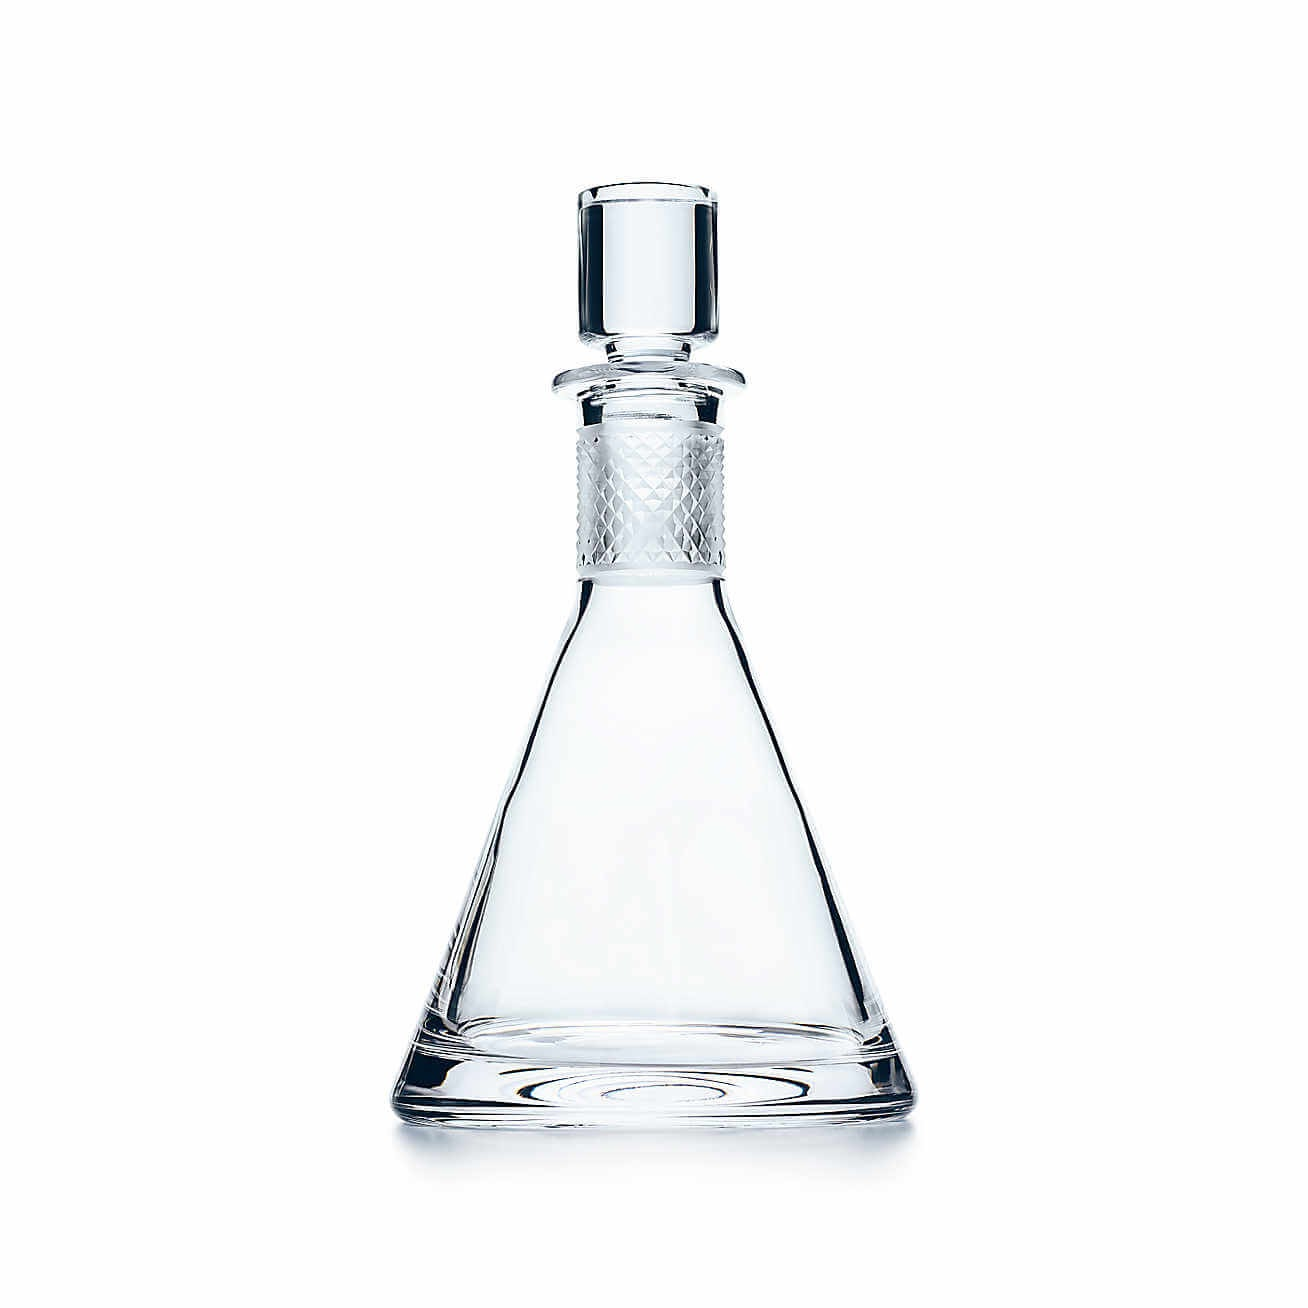 Tiffany & Co. Diamond Point Conical Decanter